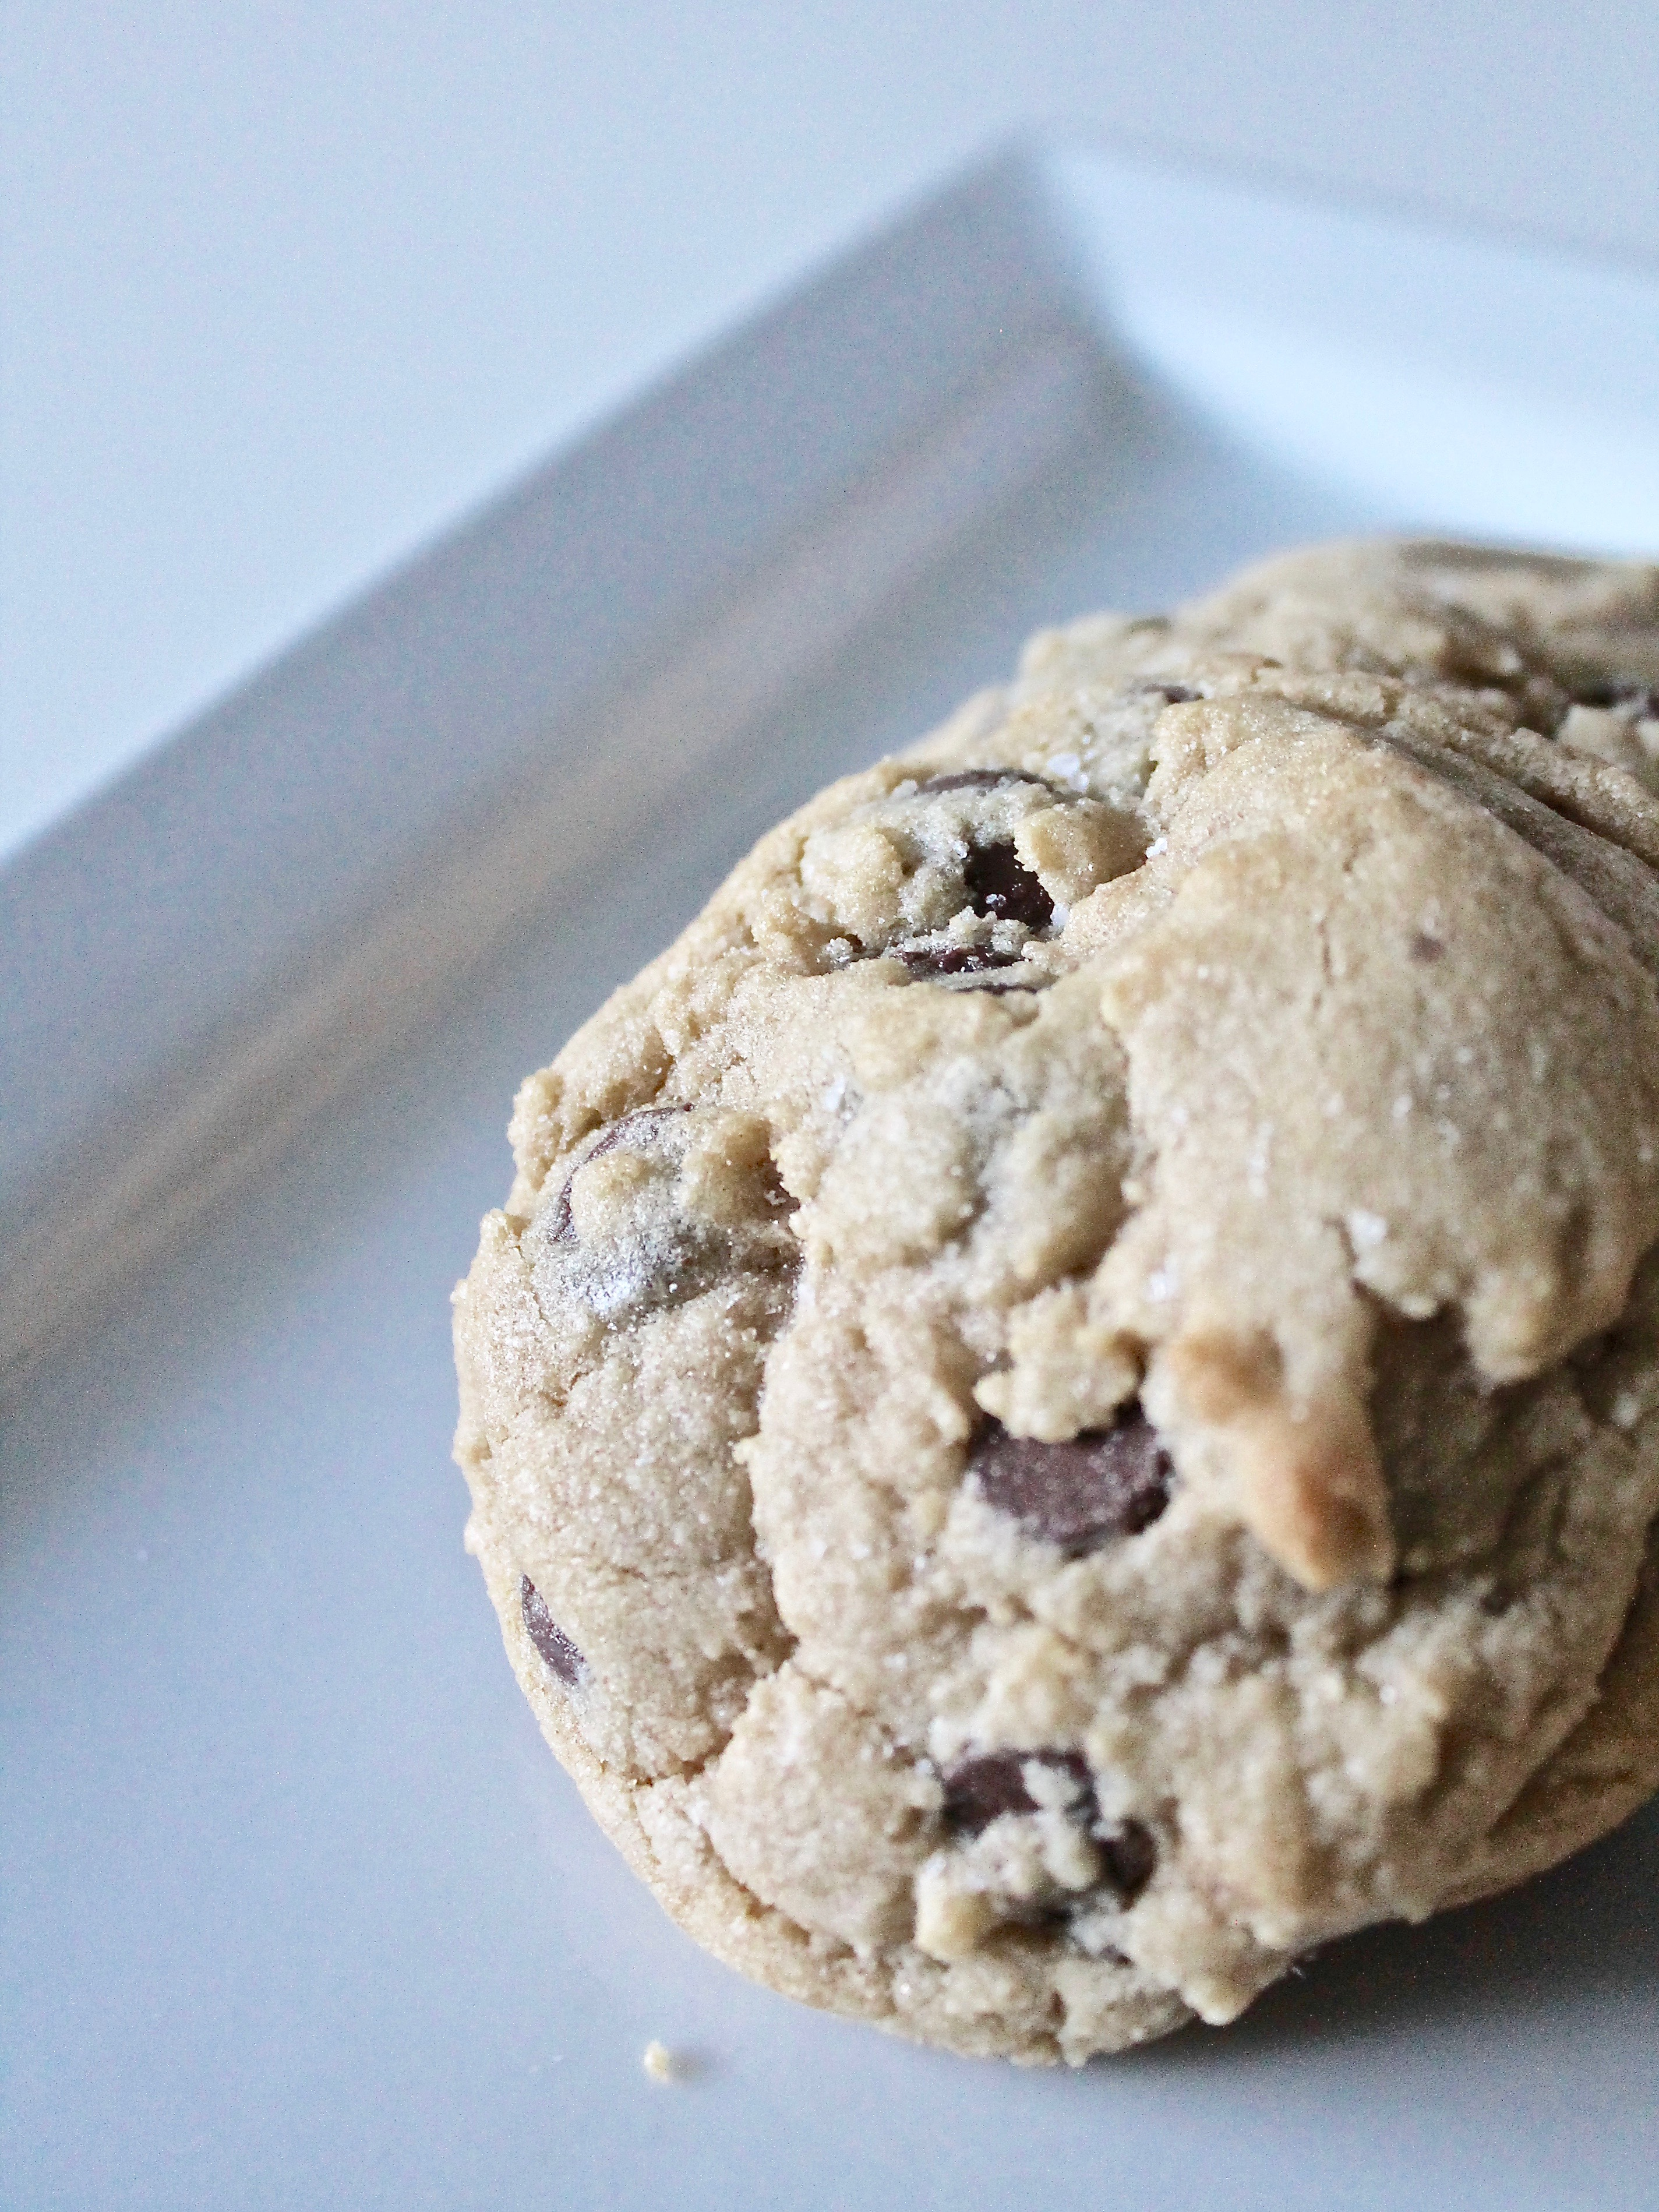 With a mix of white/granulated sugar and brown sugar, these chocolate chip cookies are the perfect cookie. www.cakebycourtney.com